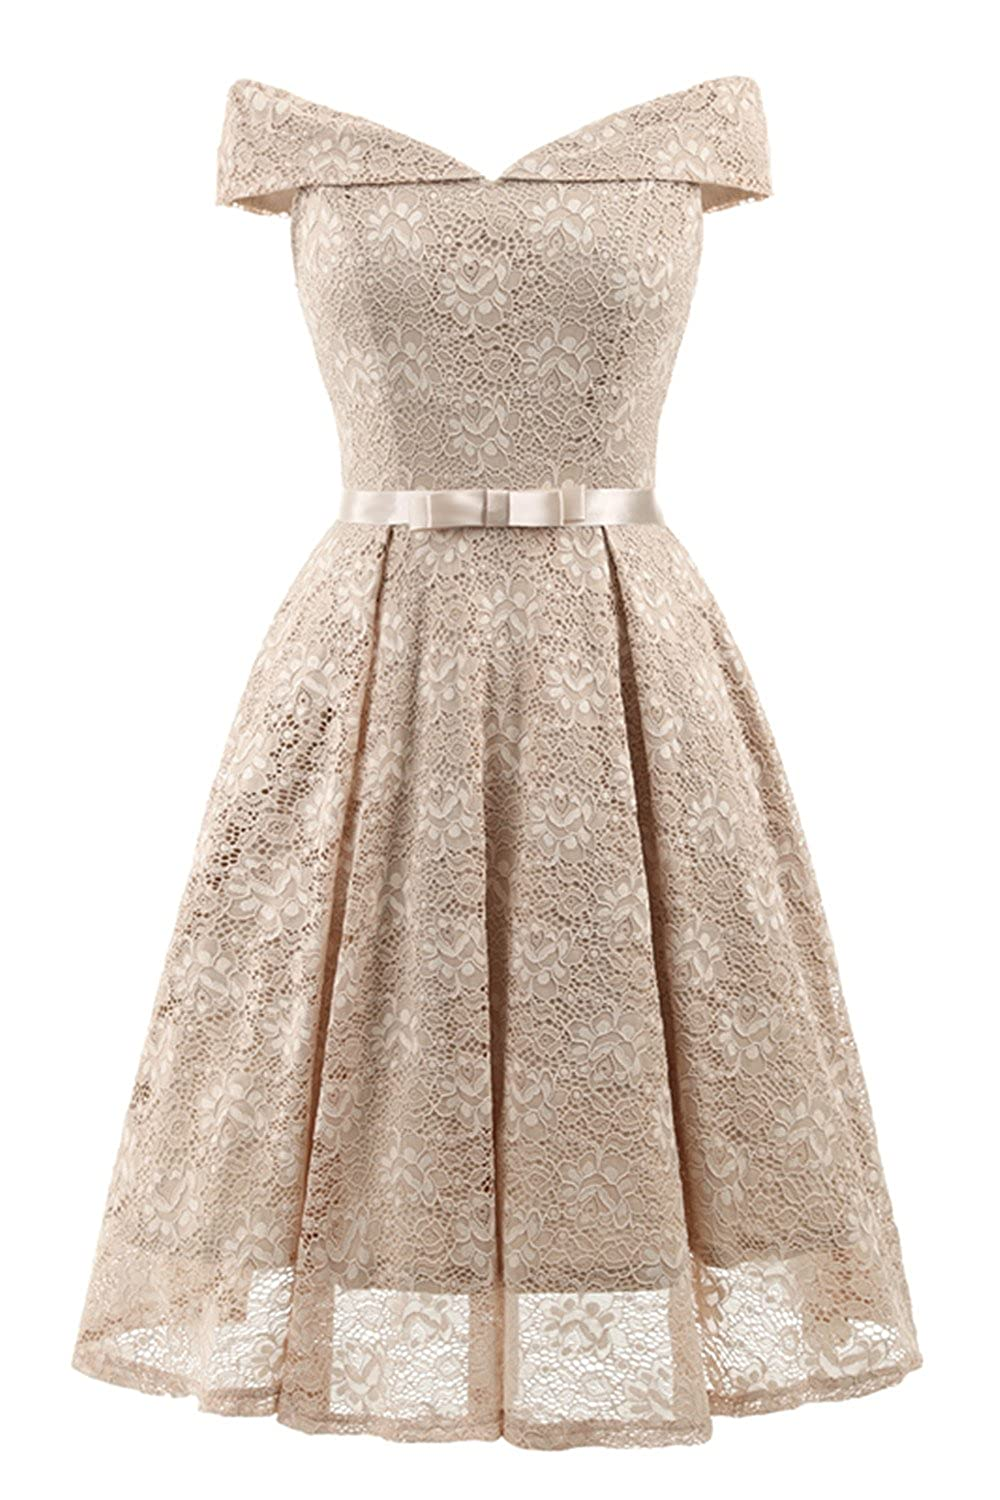 bb74ee719b48 Bright Deer Women Bardot Lace Vintage Midi Skater Dress Party Cocktail  Special Occasion  Amazon.co.uk  Clothing